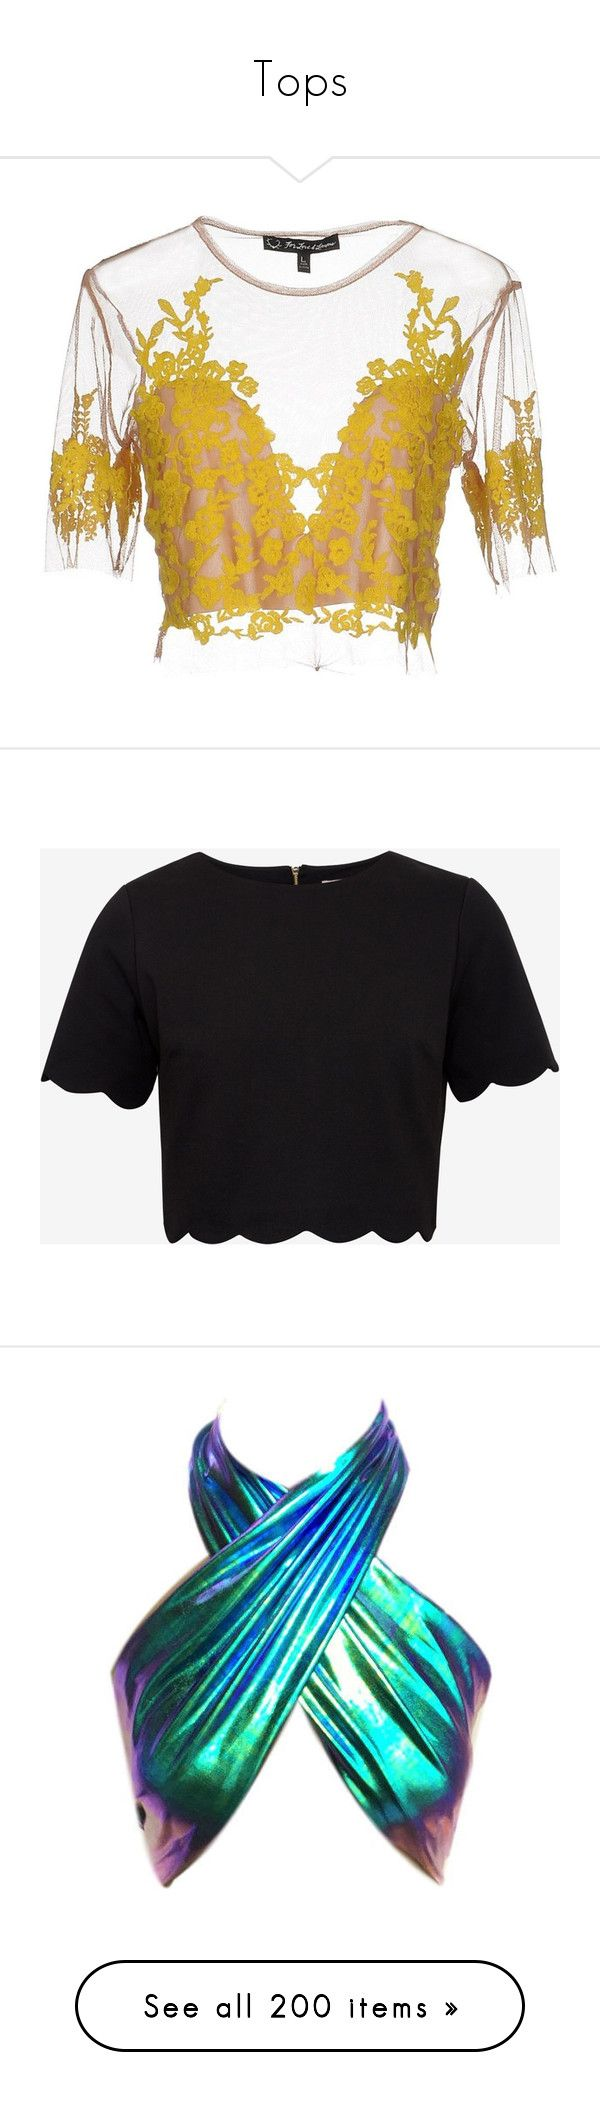 """""""Tops"""" by altrisa-mulla ❤ liked on Polyvore featuring tops, blouses, shirts, crop top, yellow, embroidery shirts, short-sleeve blouse, crop blouse, short sleeve shirts and black"""